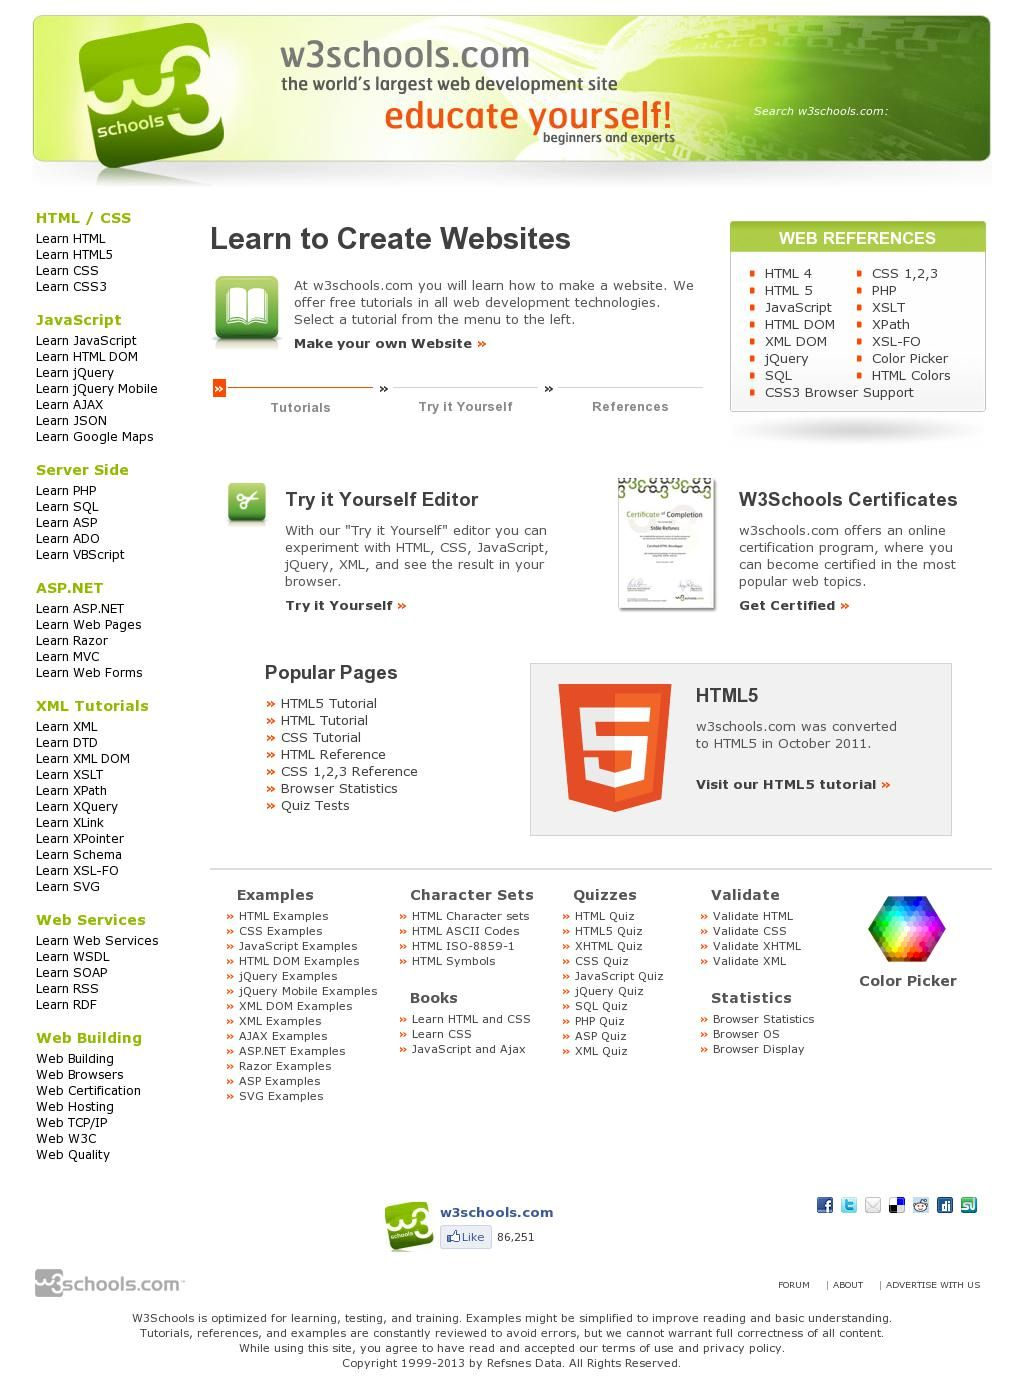 The Website W3schools Courtesy Of Pinstamatic Http